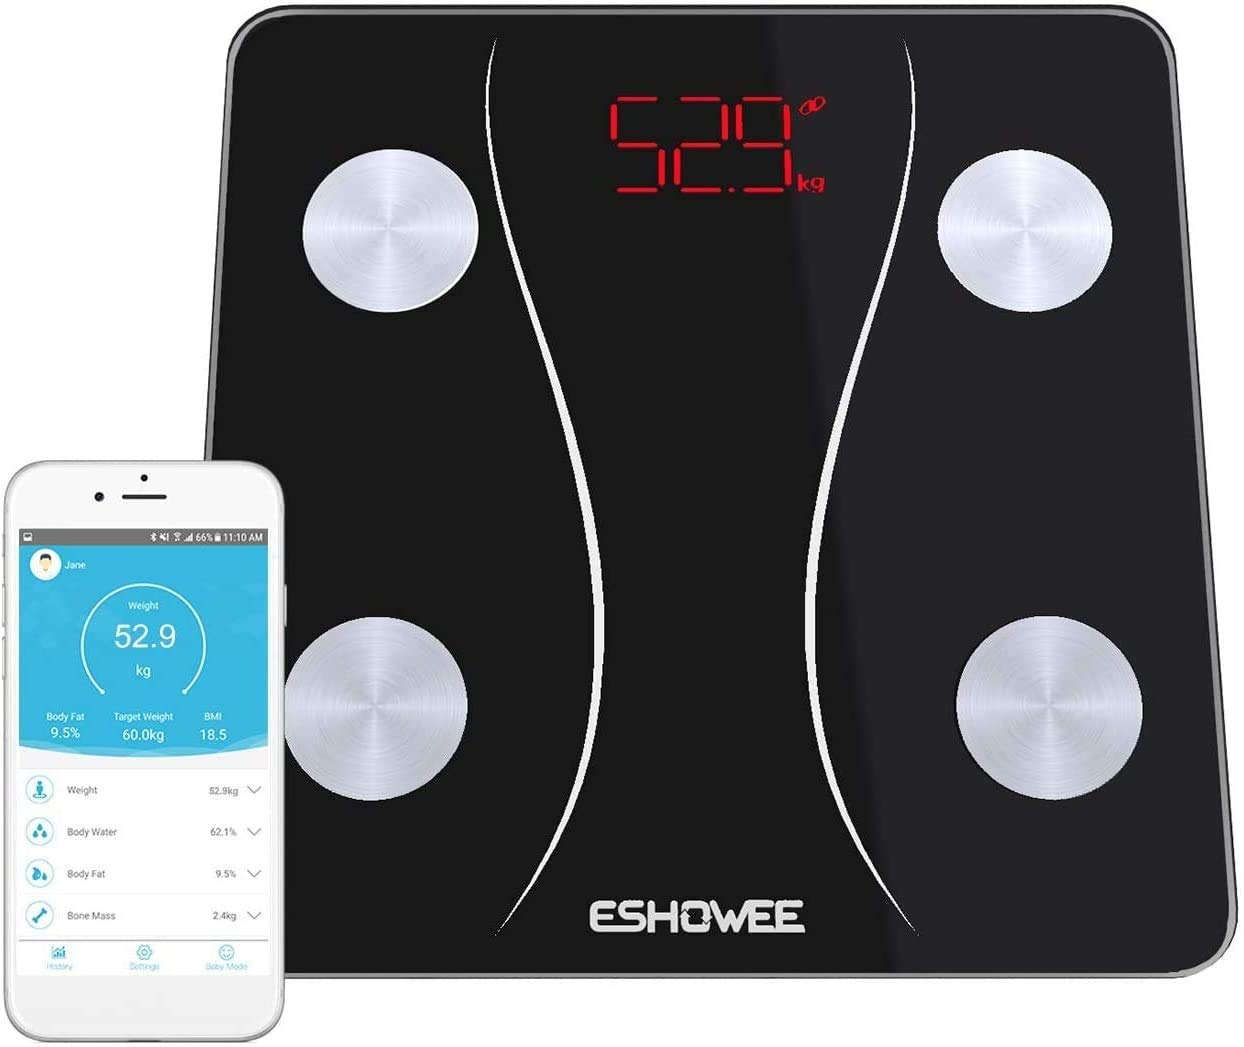 Bluetooth Body Fat Scale, ESHOWEE Smart Wireless BMI Scale Bathroom Digital Weight Scale Body Composition Analyzer with Smartphone App for Water Bone Mass BMR Muscle (White)